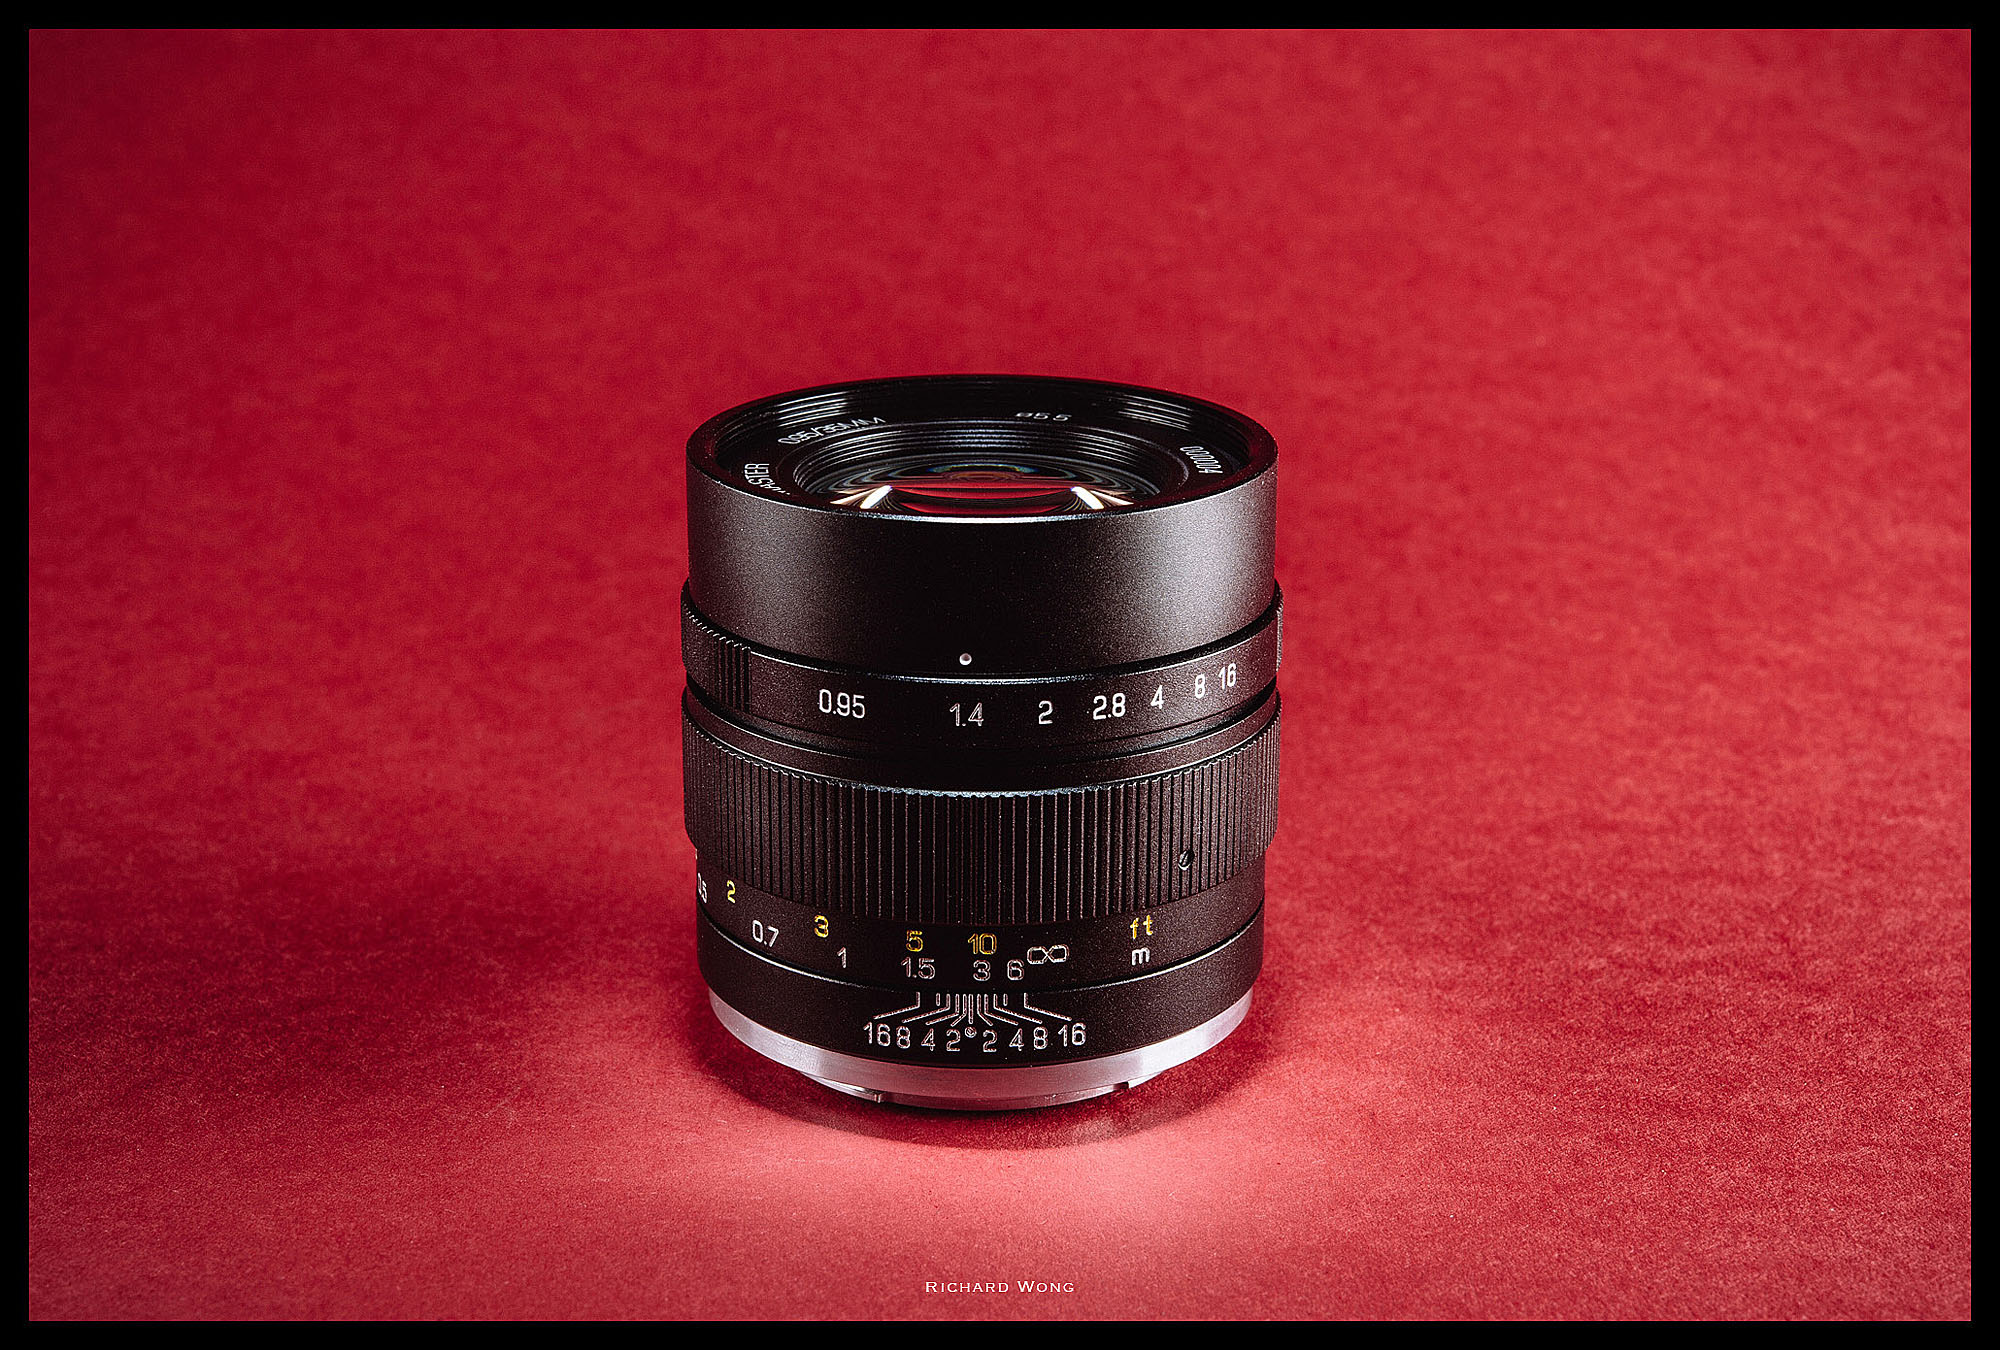 mitakon-speedmaster-35mm-f-0.95-II-review-03